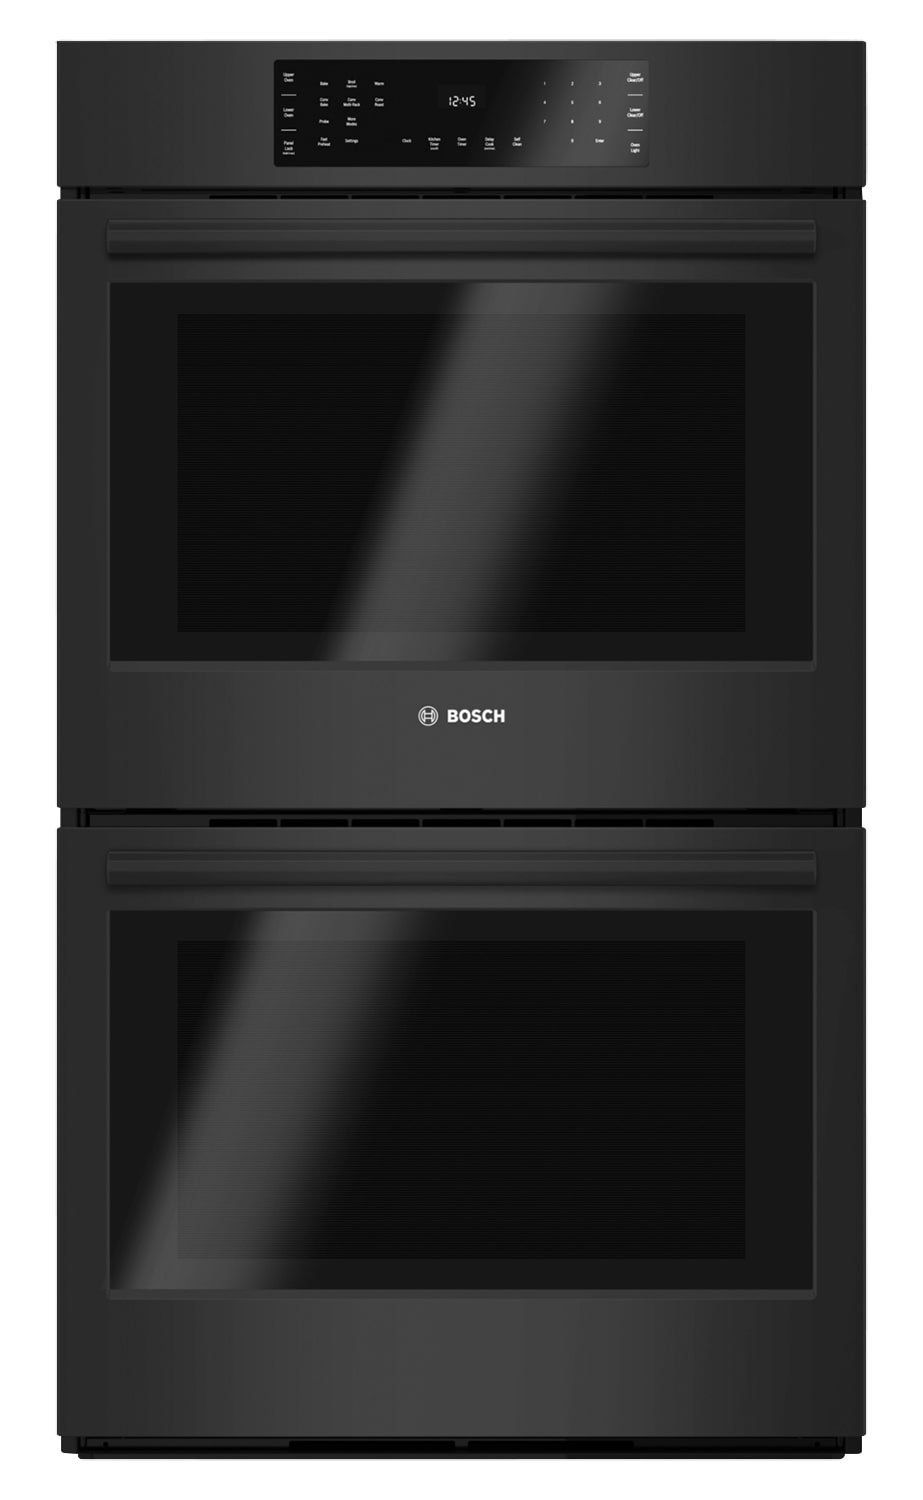 Cooking Products - Bosch Black Double Wall Oven (9.2 Cu. Ft.) - HBL8661UC